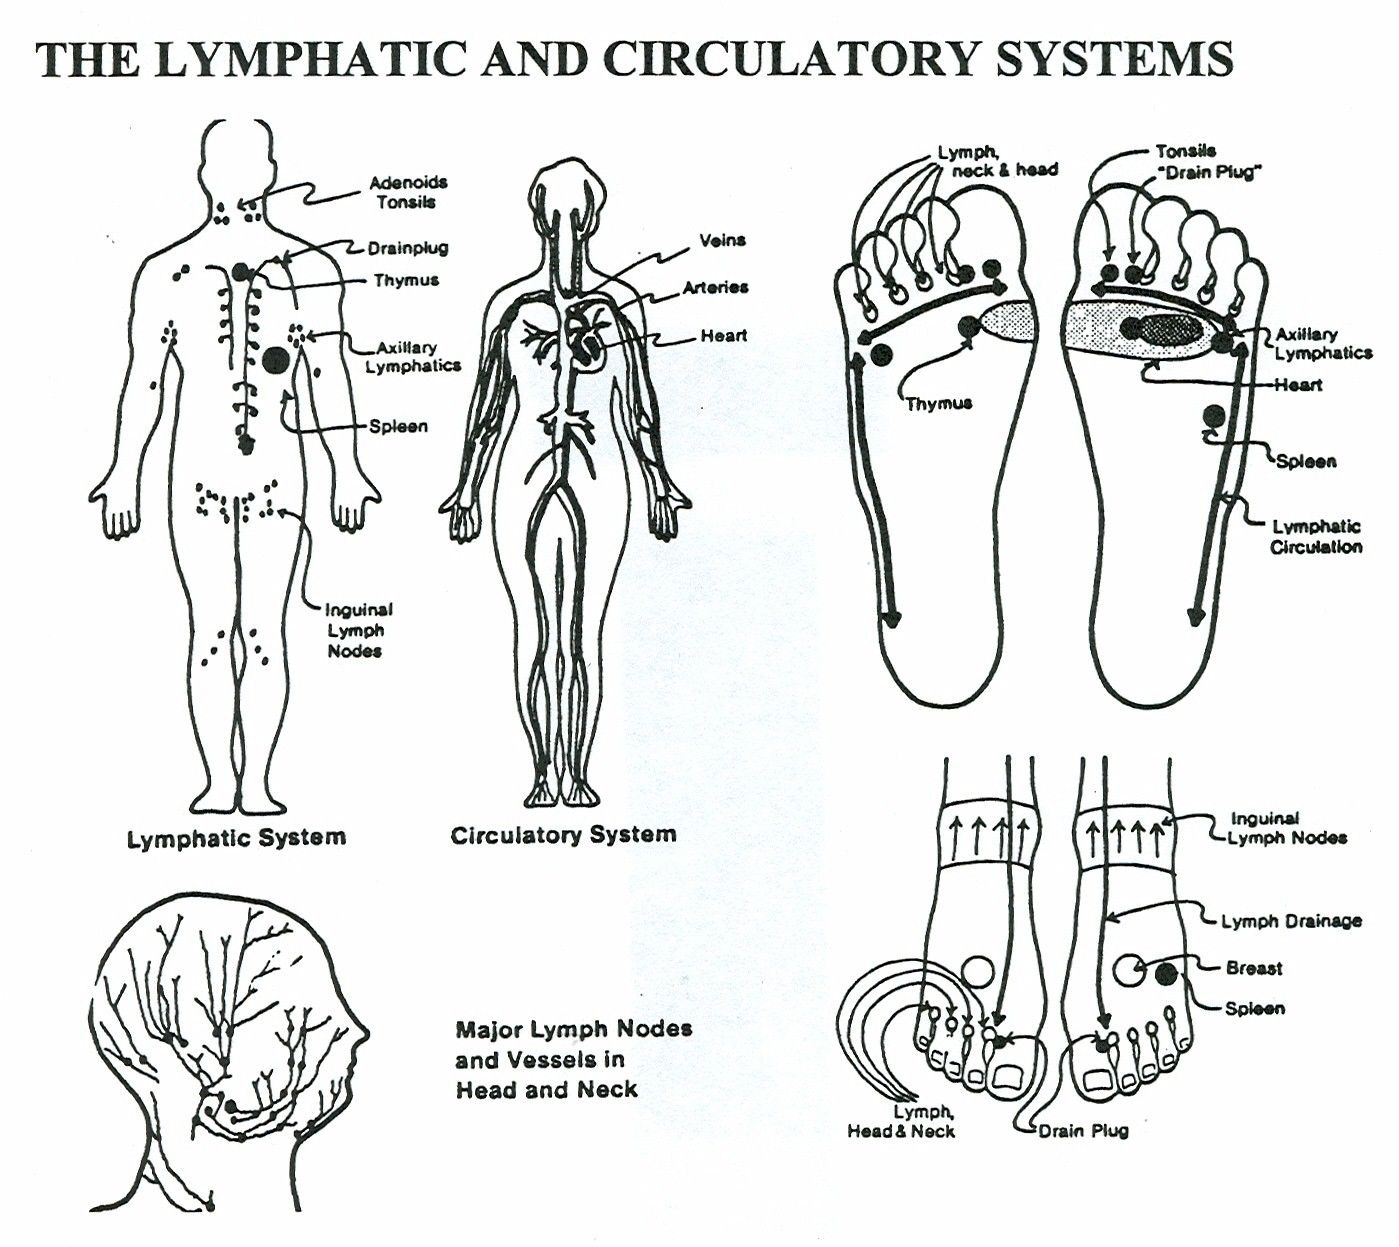 Lymphatic System All Great Spots To Massage To Get The Lymph Flowing